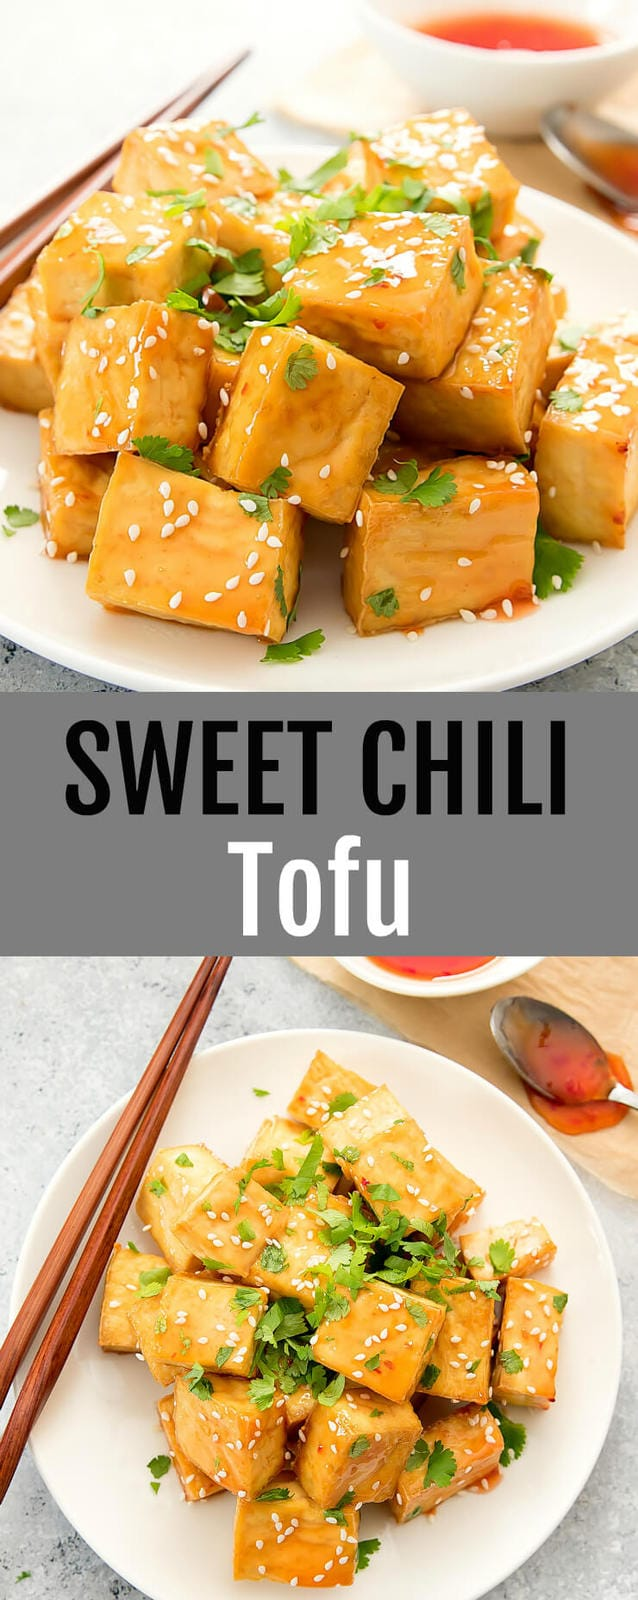 Sweet Chili Tofu. Crispy baked tofu is tossed in Thai sweet chili sauce for an easy and flavorful dish.